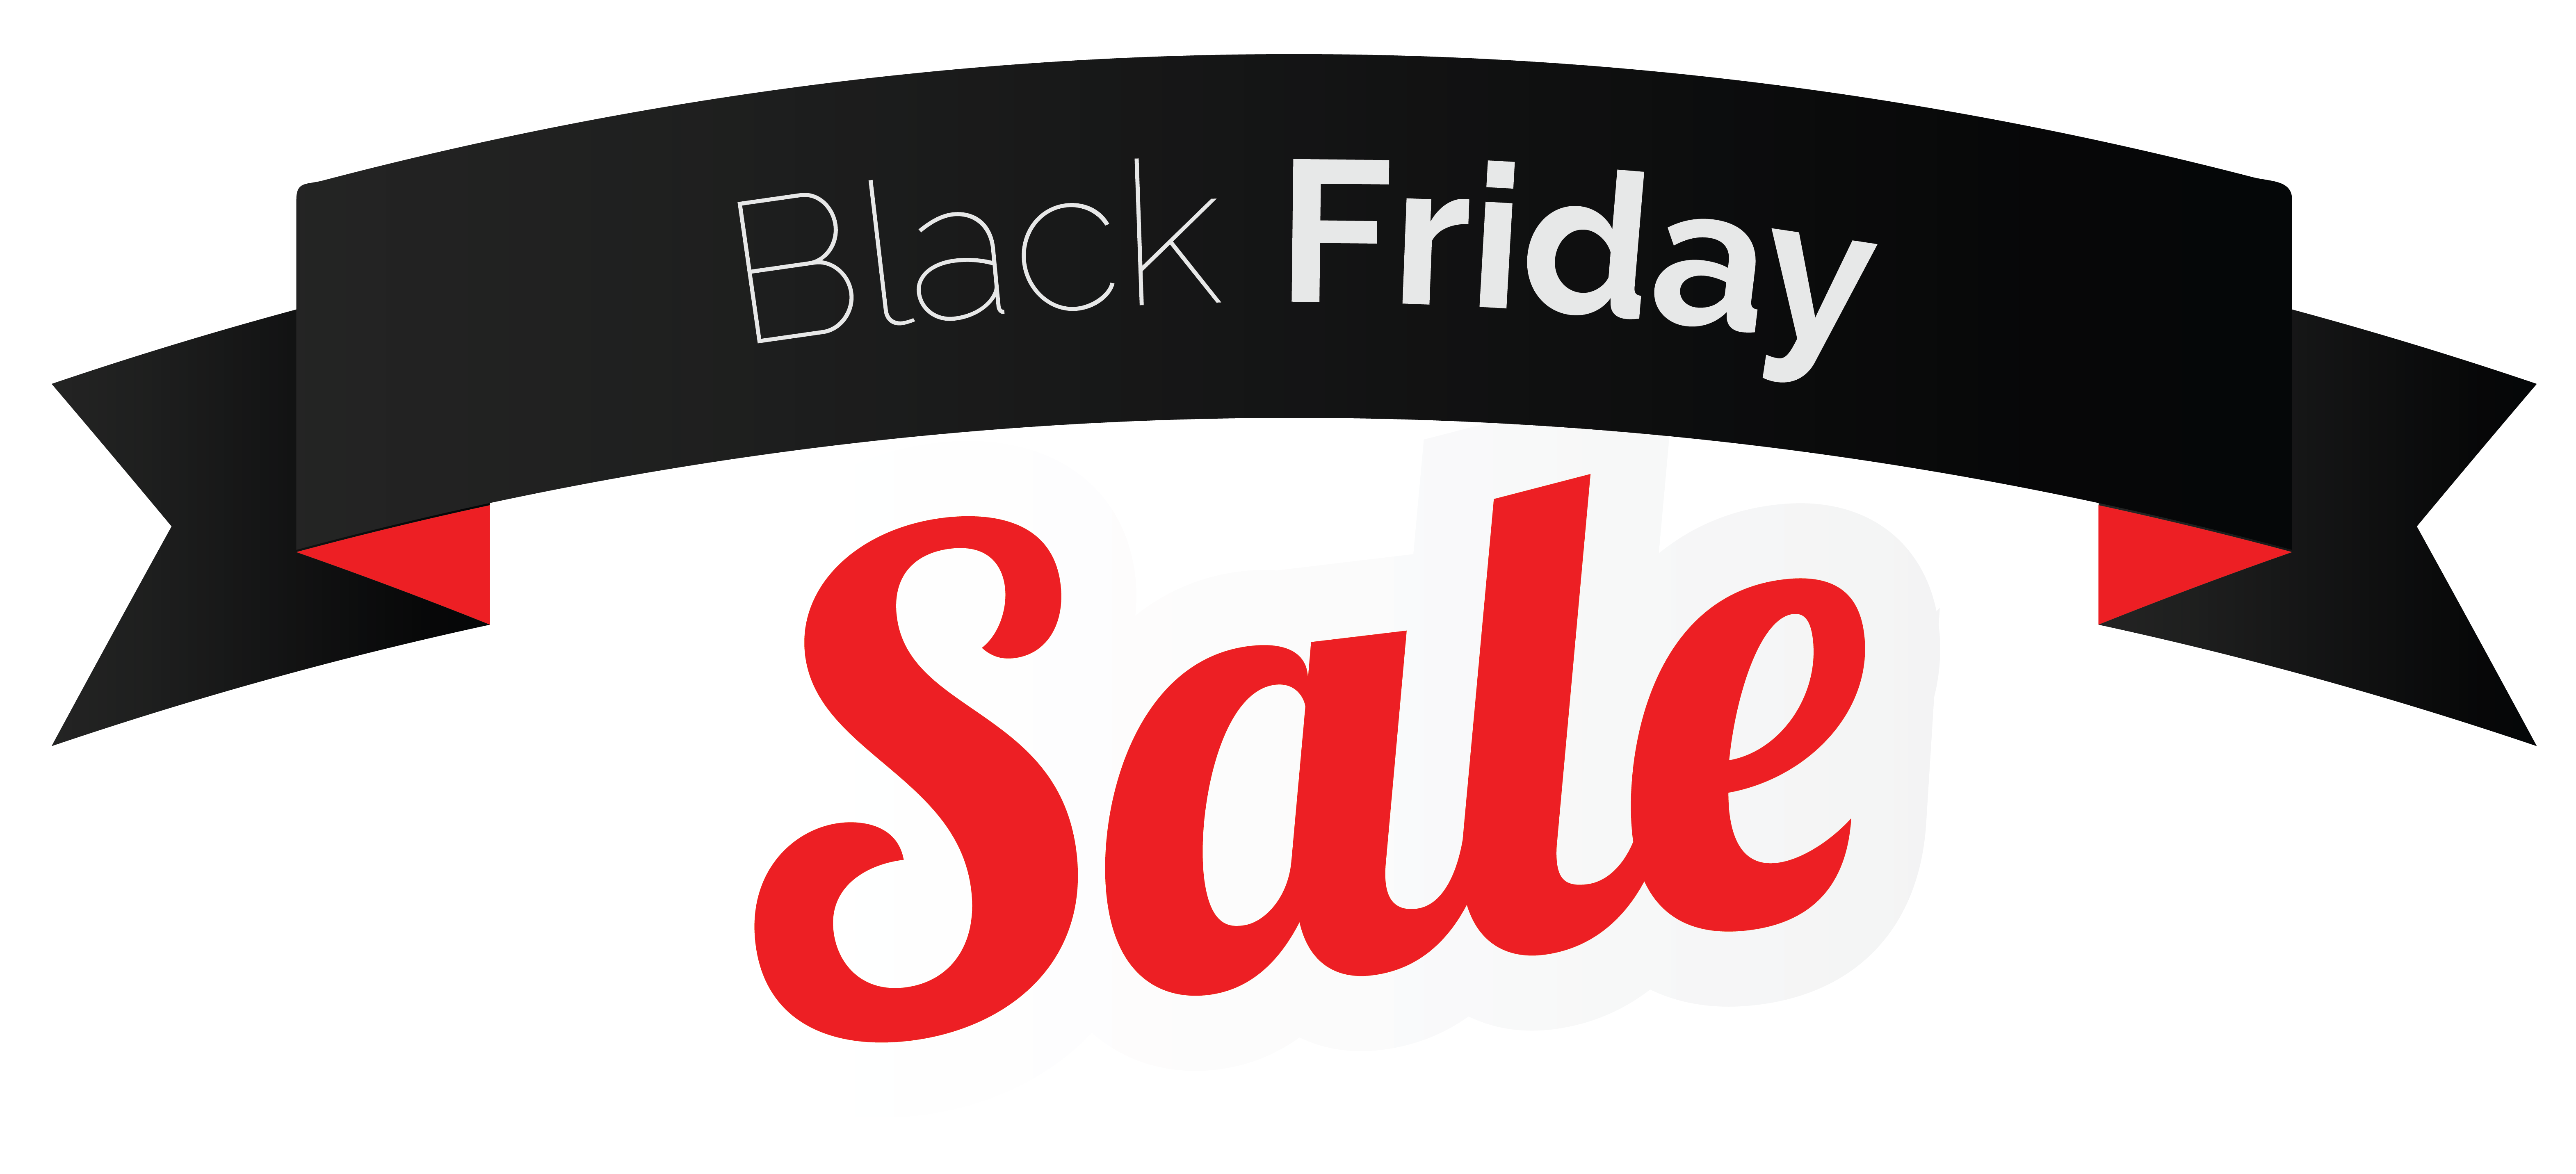 Black Friday Sale Banner PNG Clipart Image.